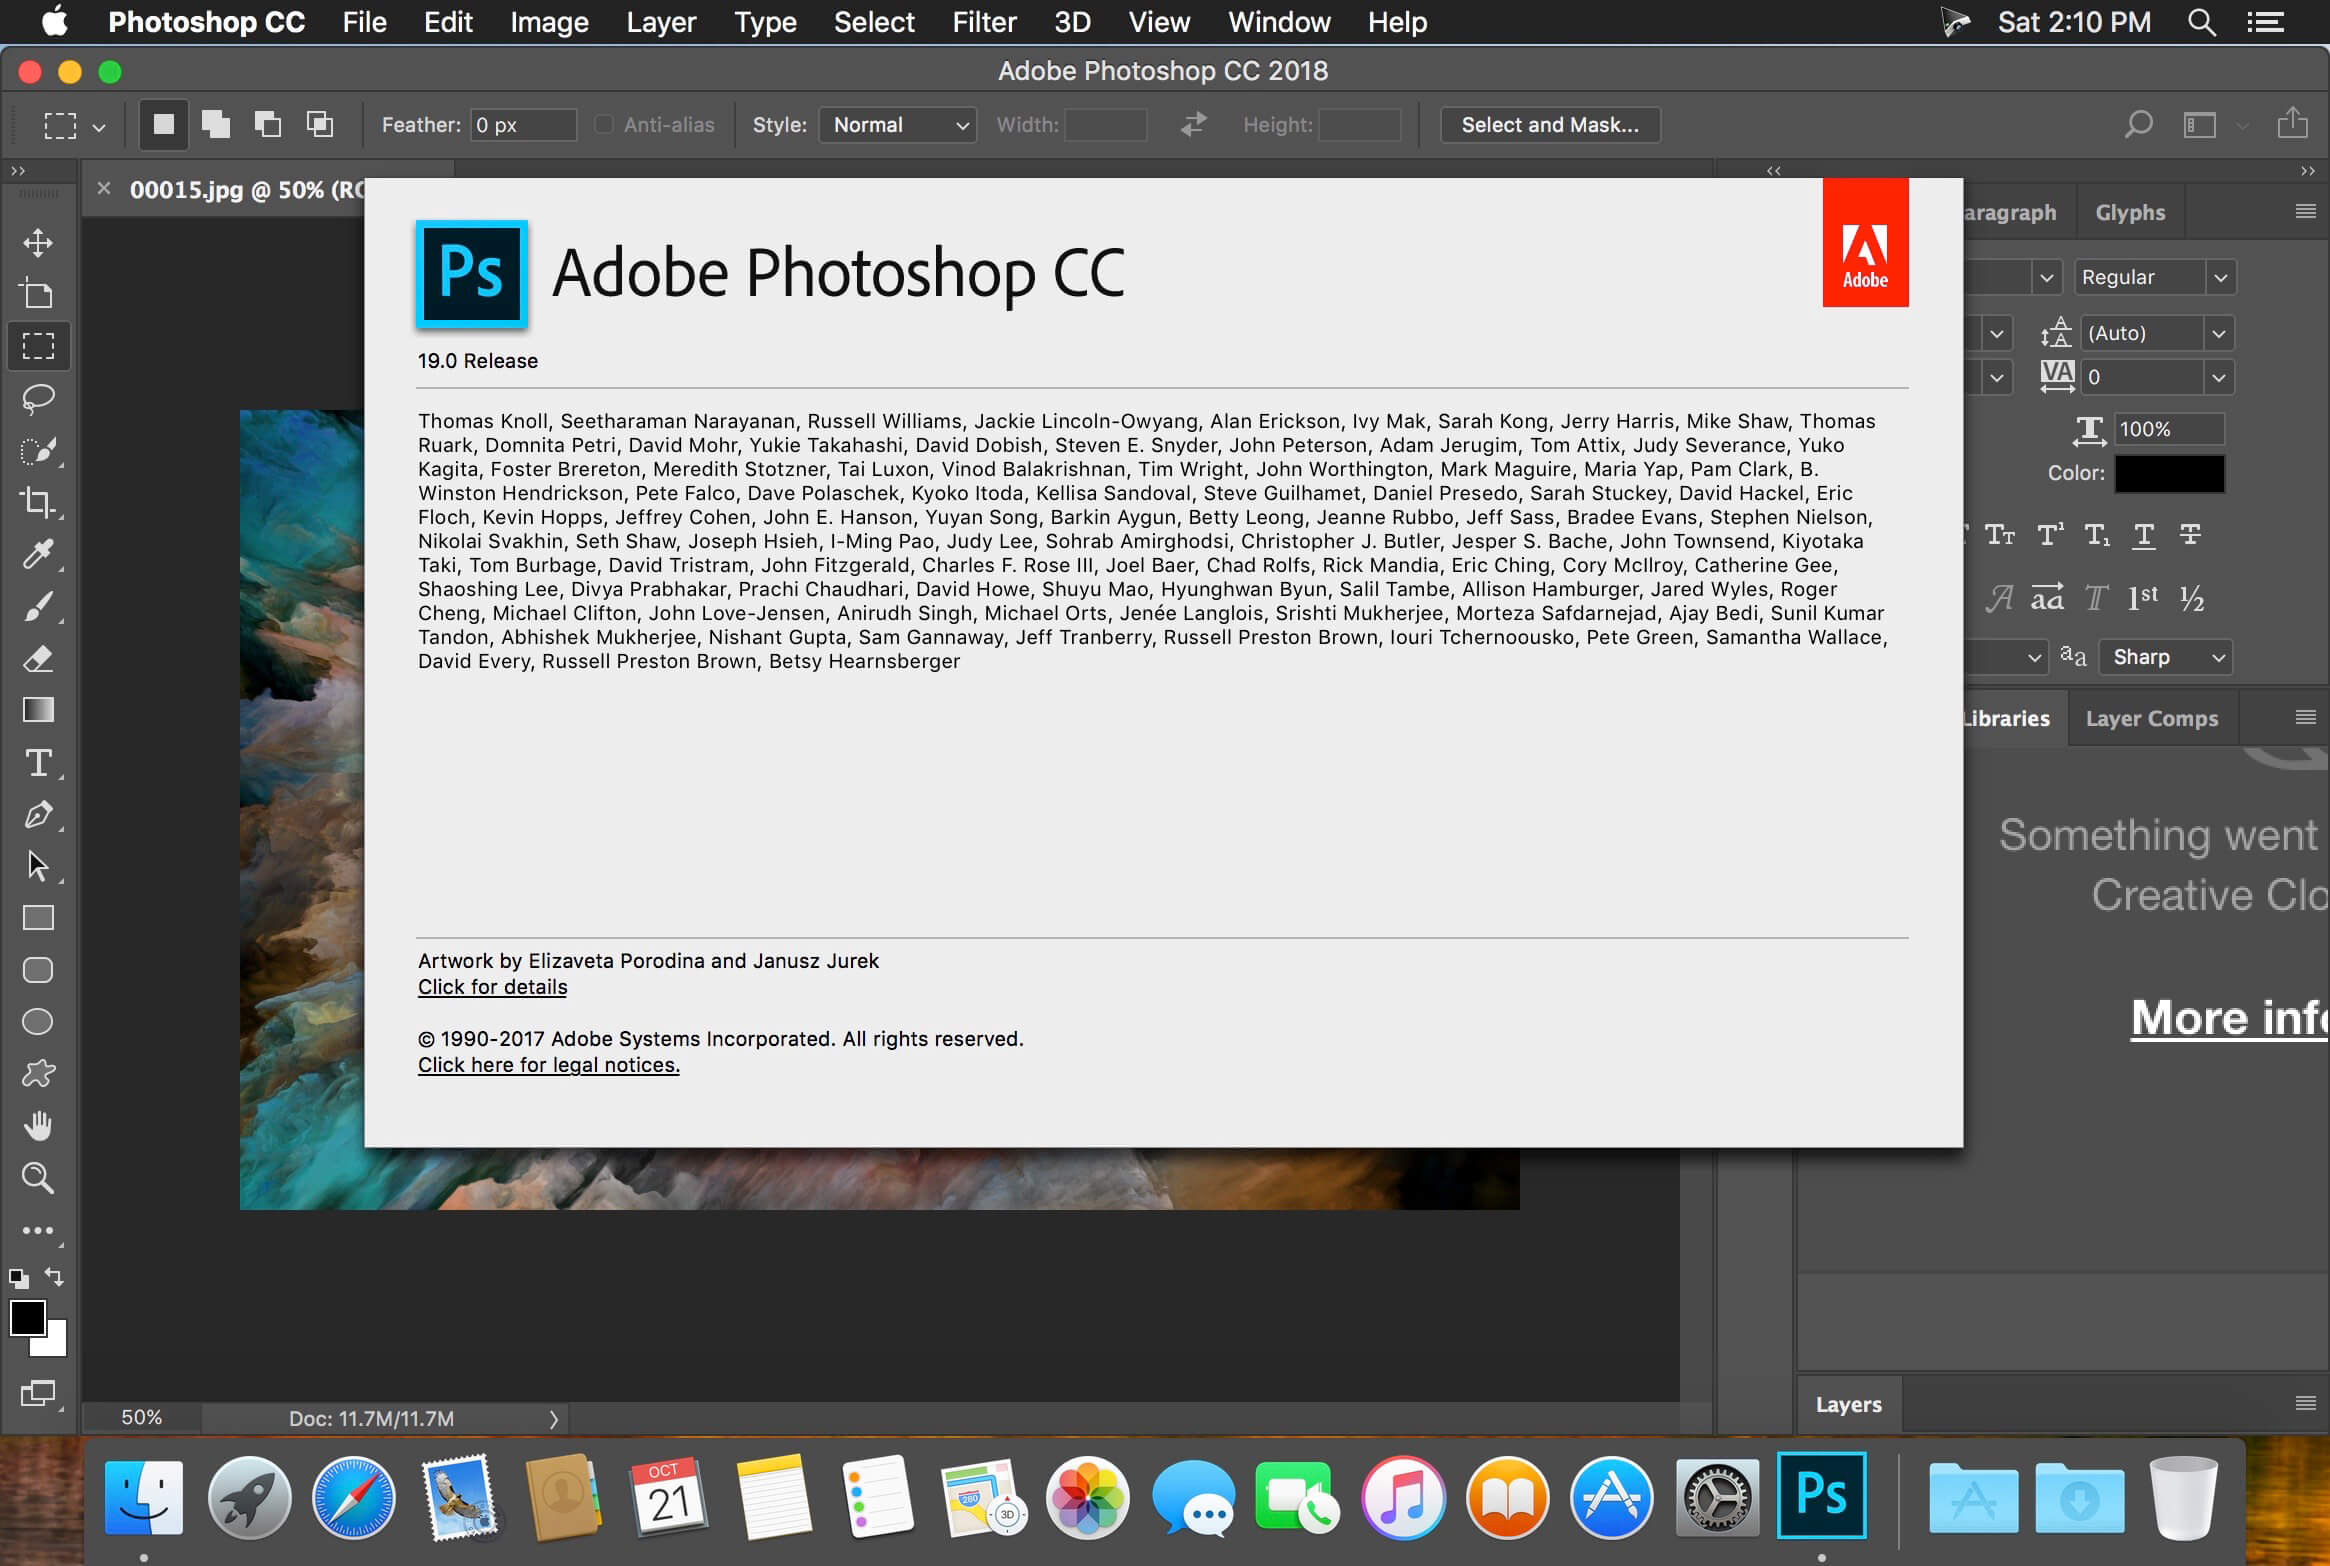 Adobe Photoshop CC 2018 v19 1 6 download | macOS